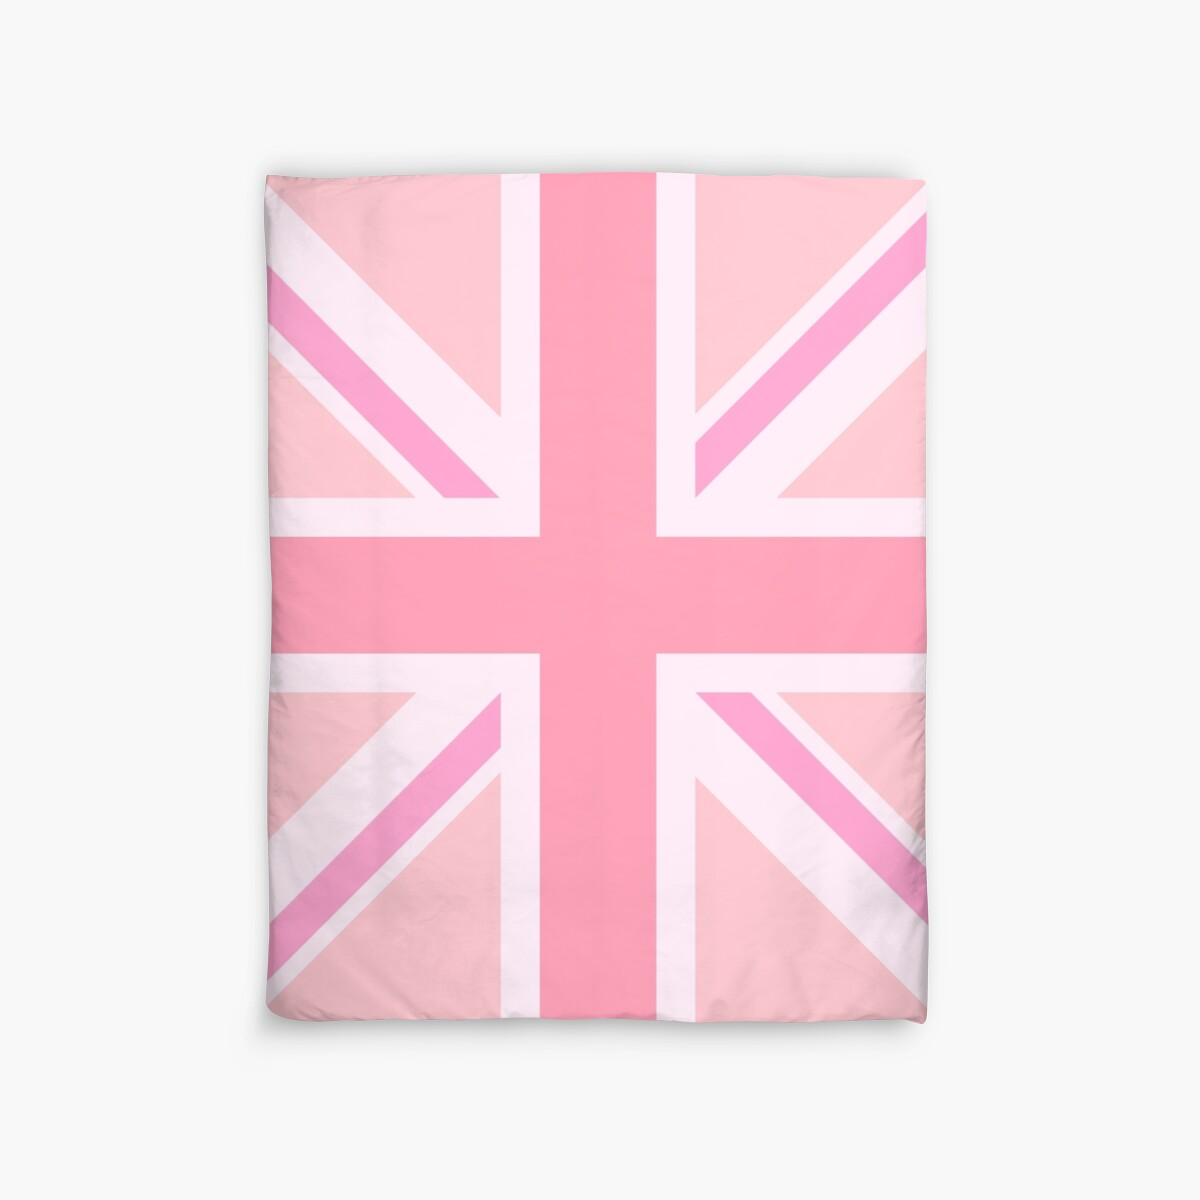 Pink union jack flag design duvet covers by for Pink union jack bedding